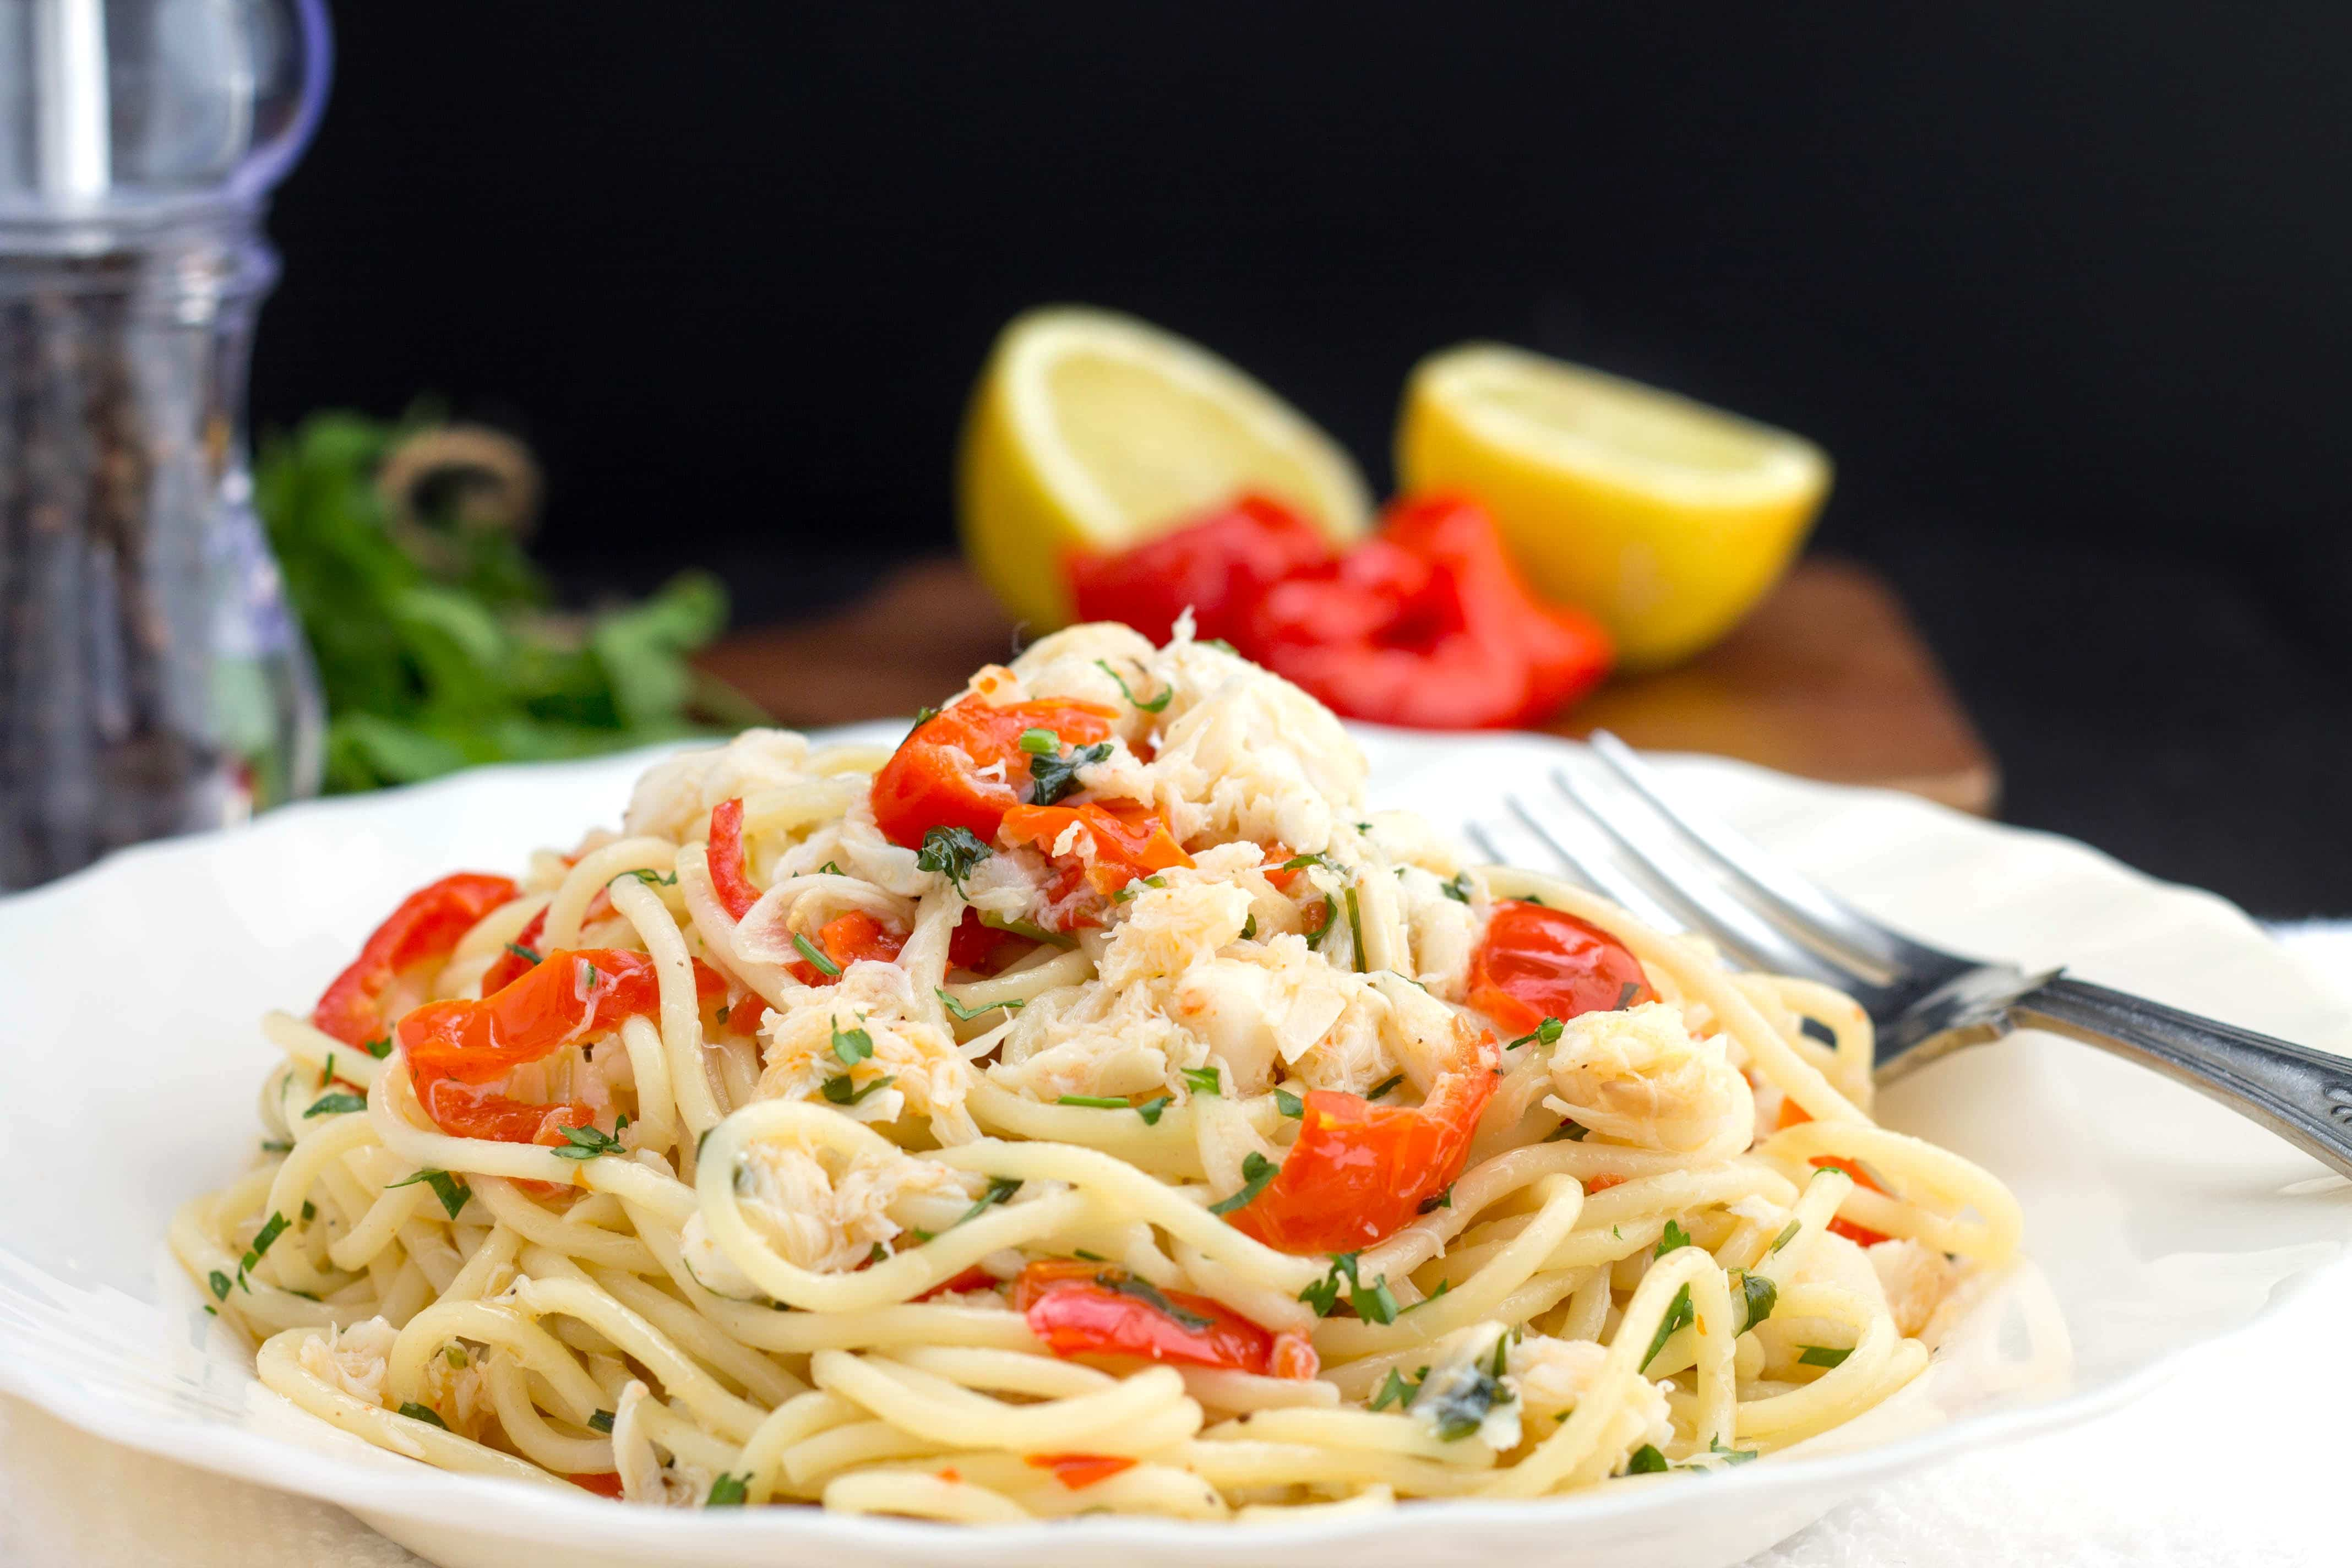 Simple Spaghetti with Crab & Piquante Peppers - Erren's Kitchen - A Delicious meal that's ready in just 20 minutes!